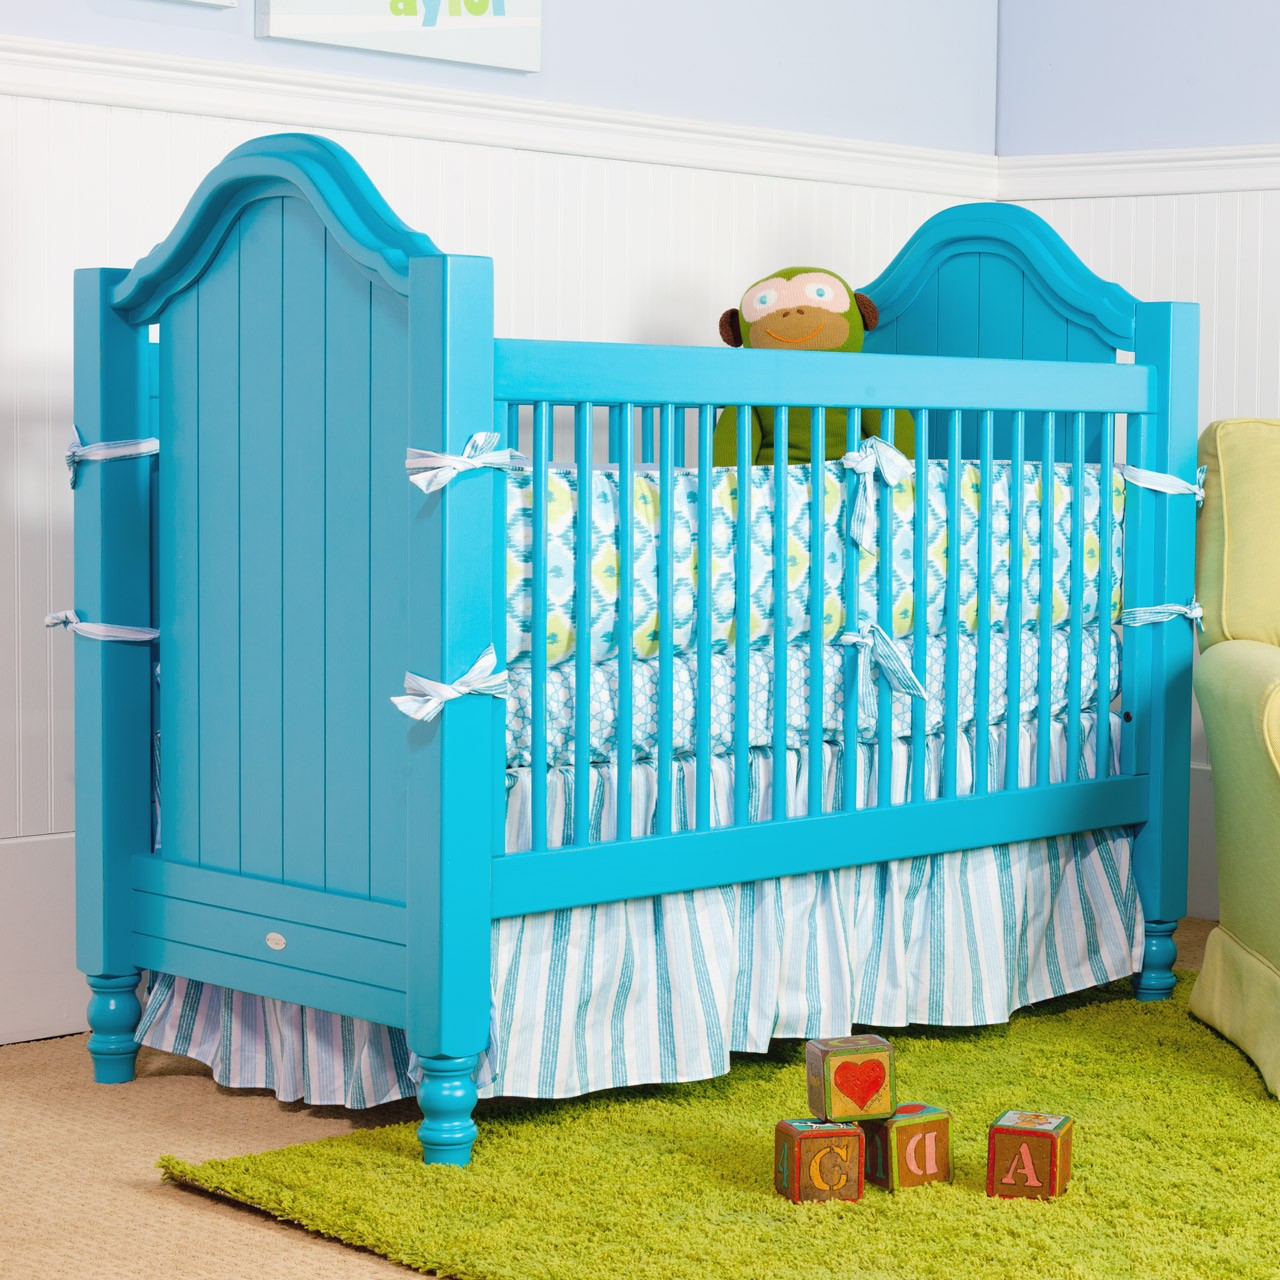 yellow crib projects s girl millies painted and zeal nursery teal project cribs room view millie